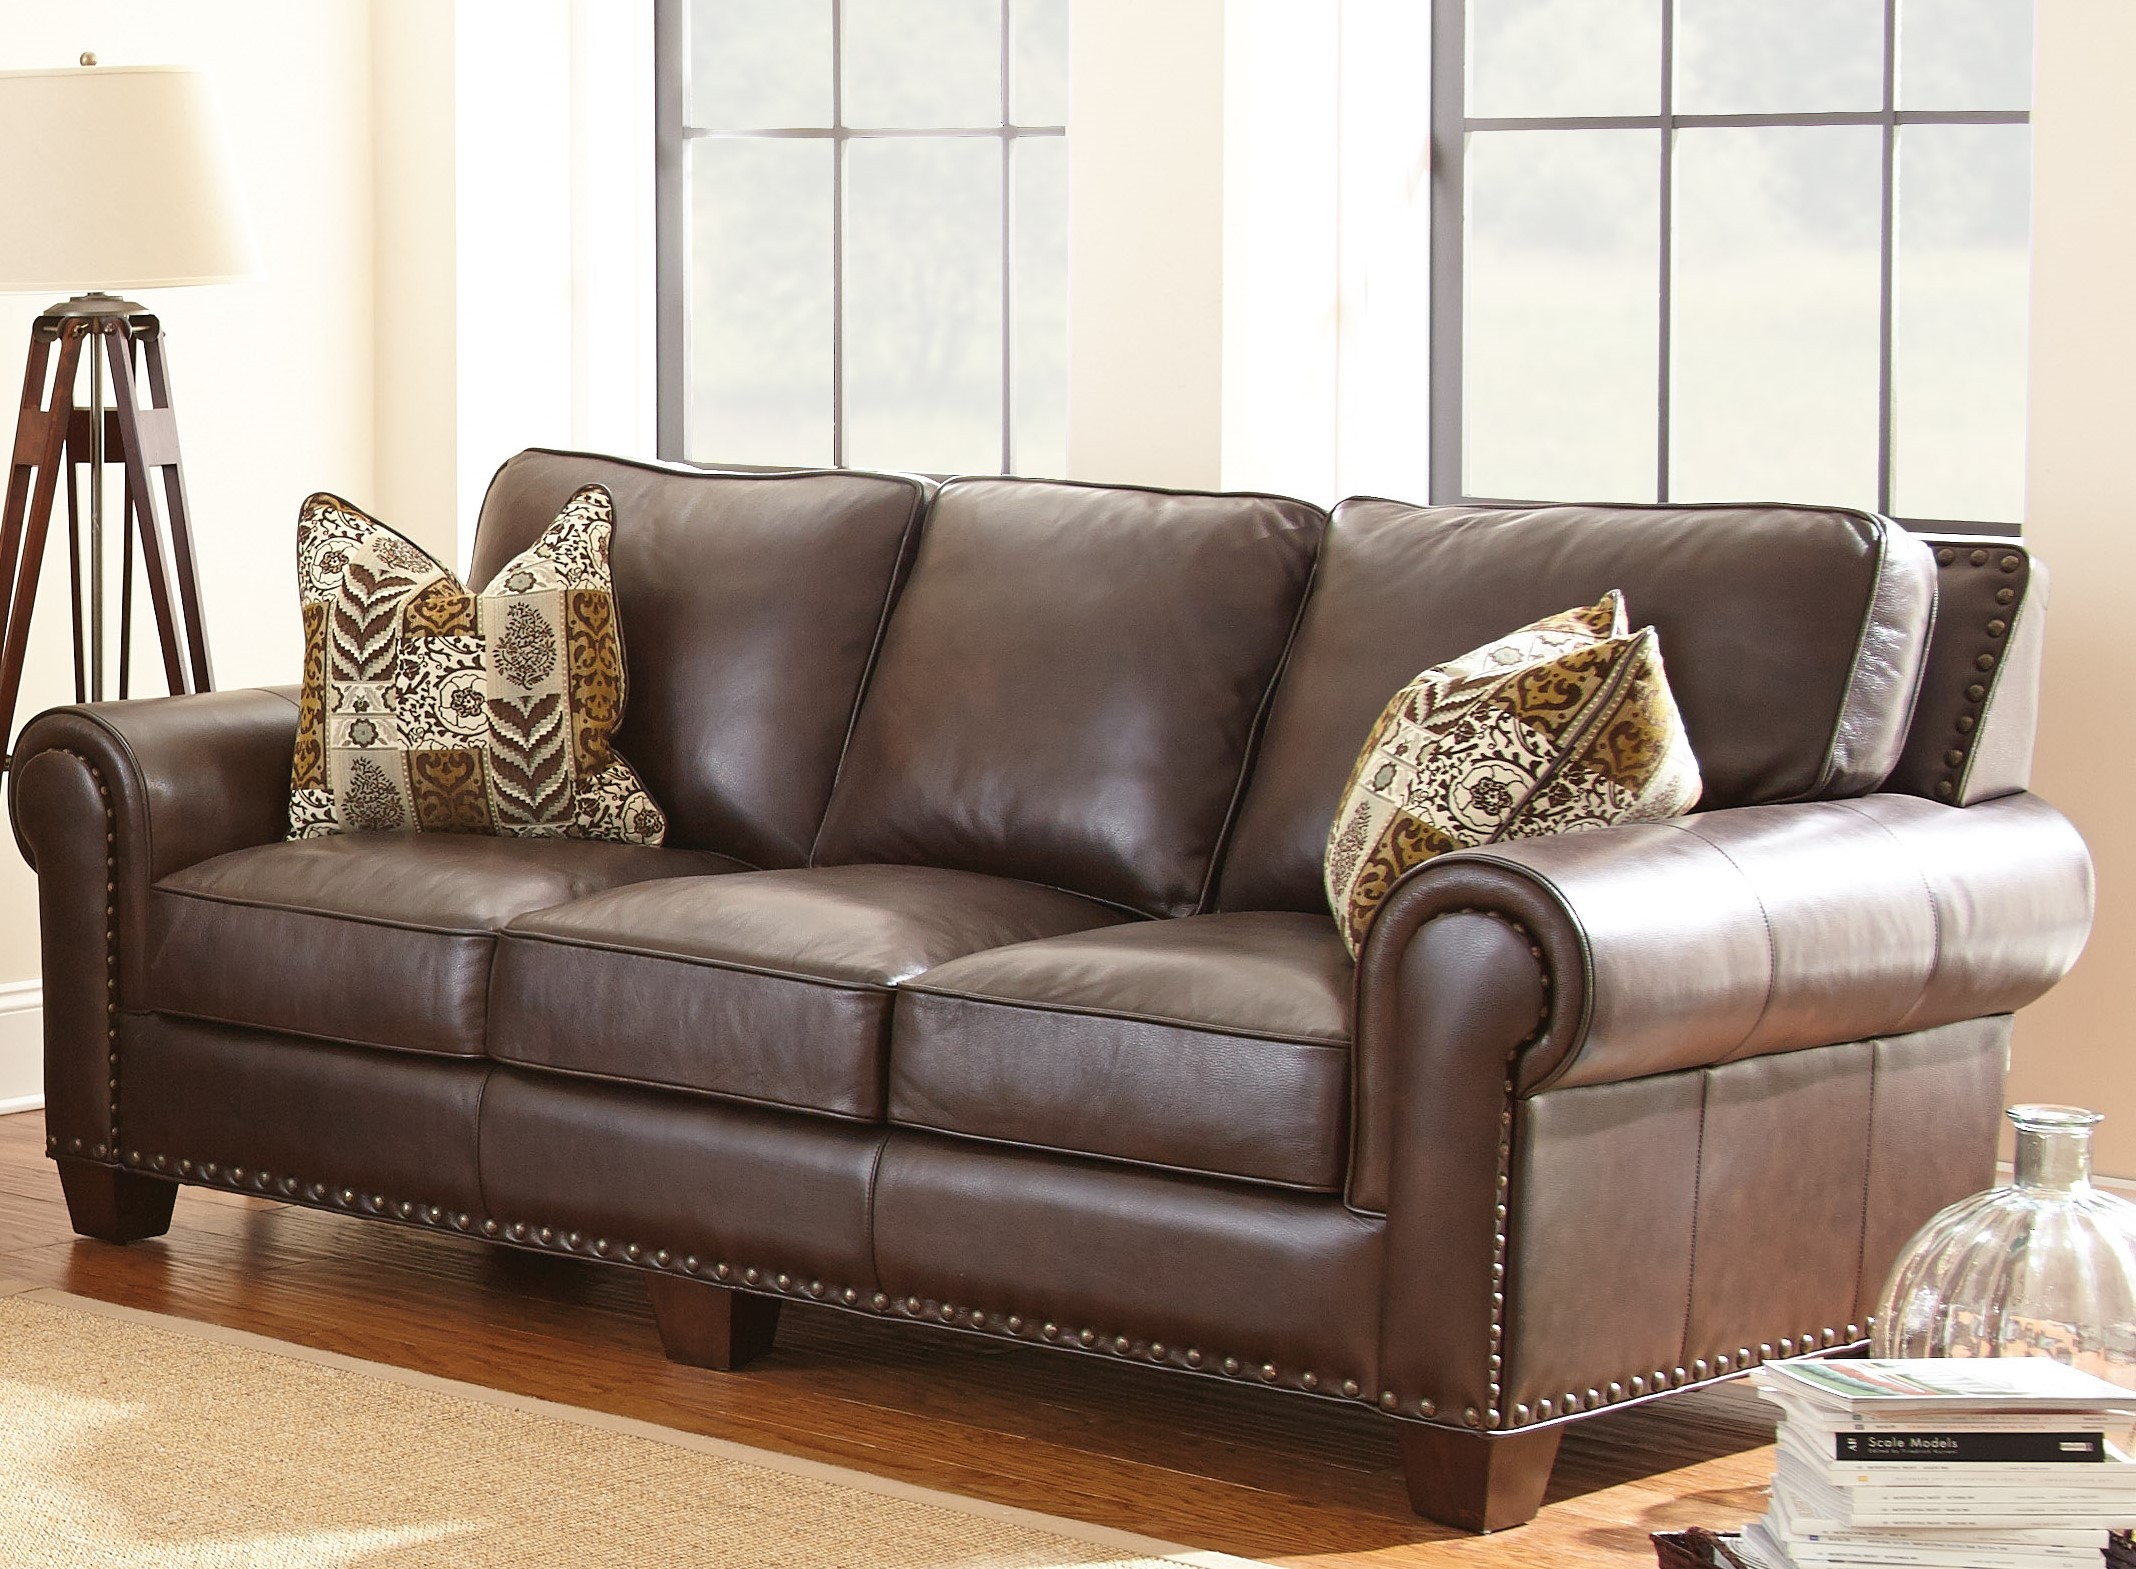 Escher Top Grain Leather Sofa With 2 Accent Pillows From